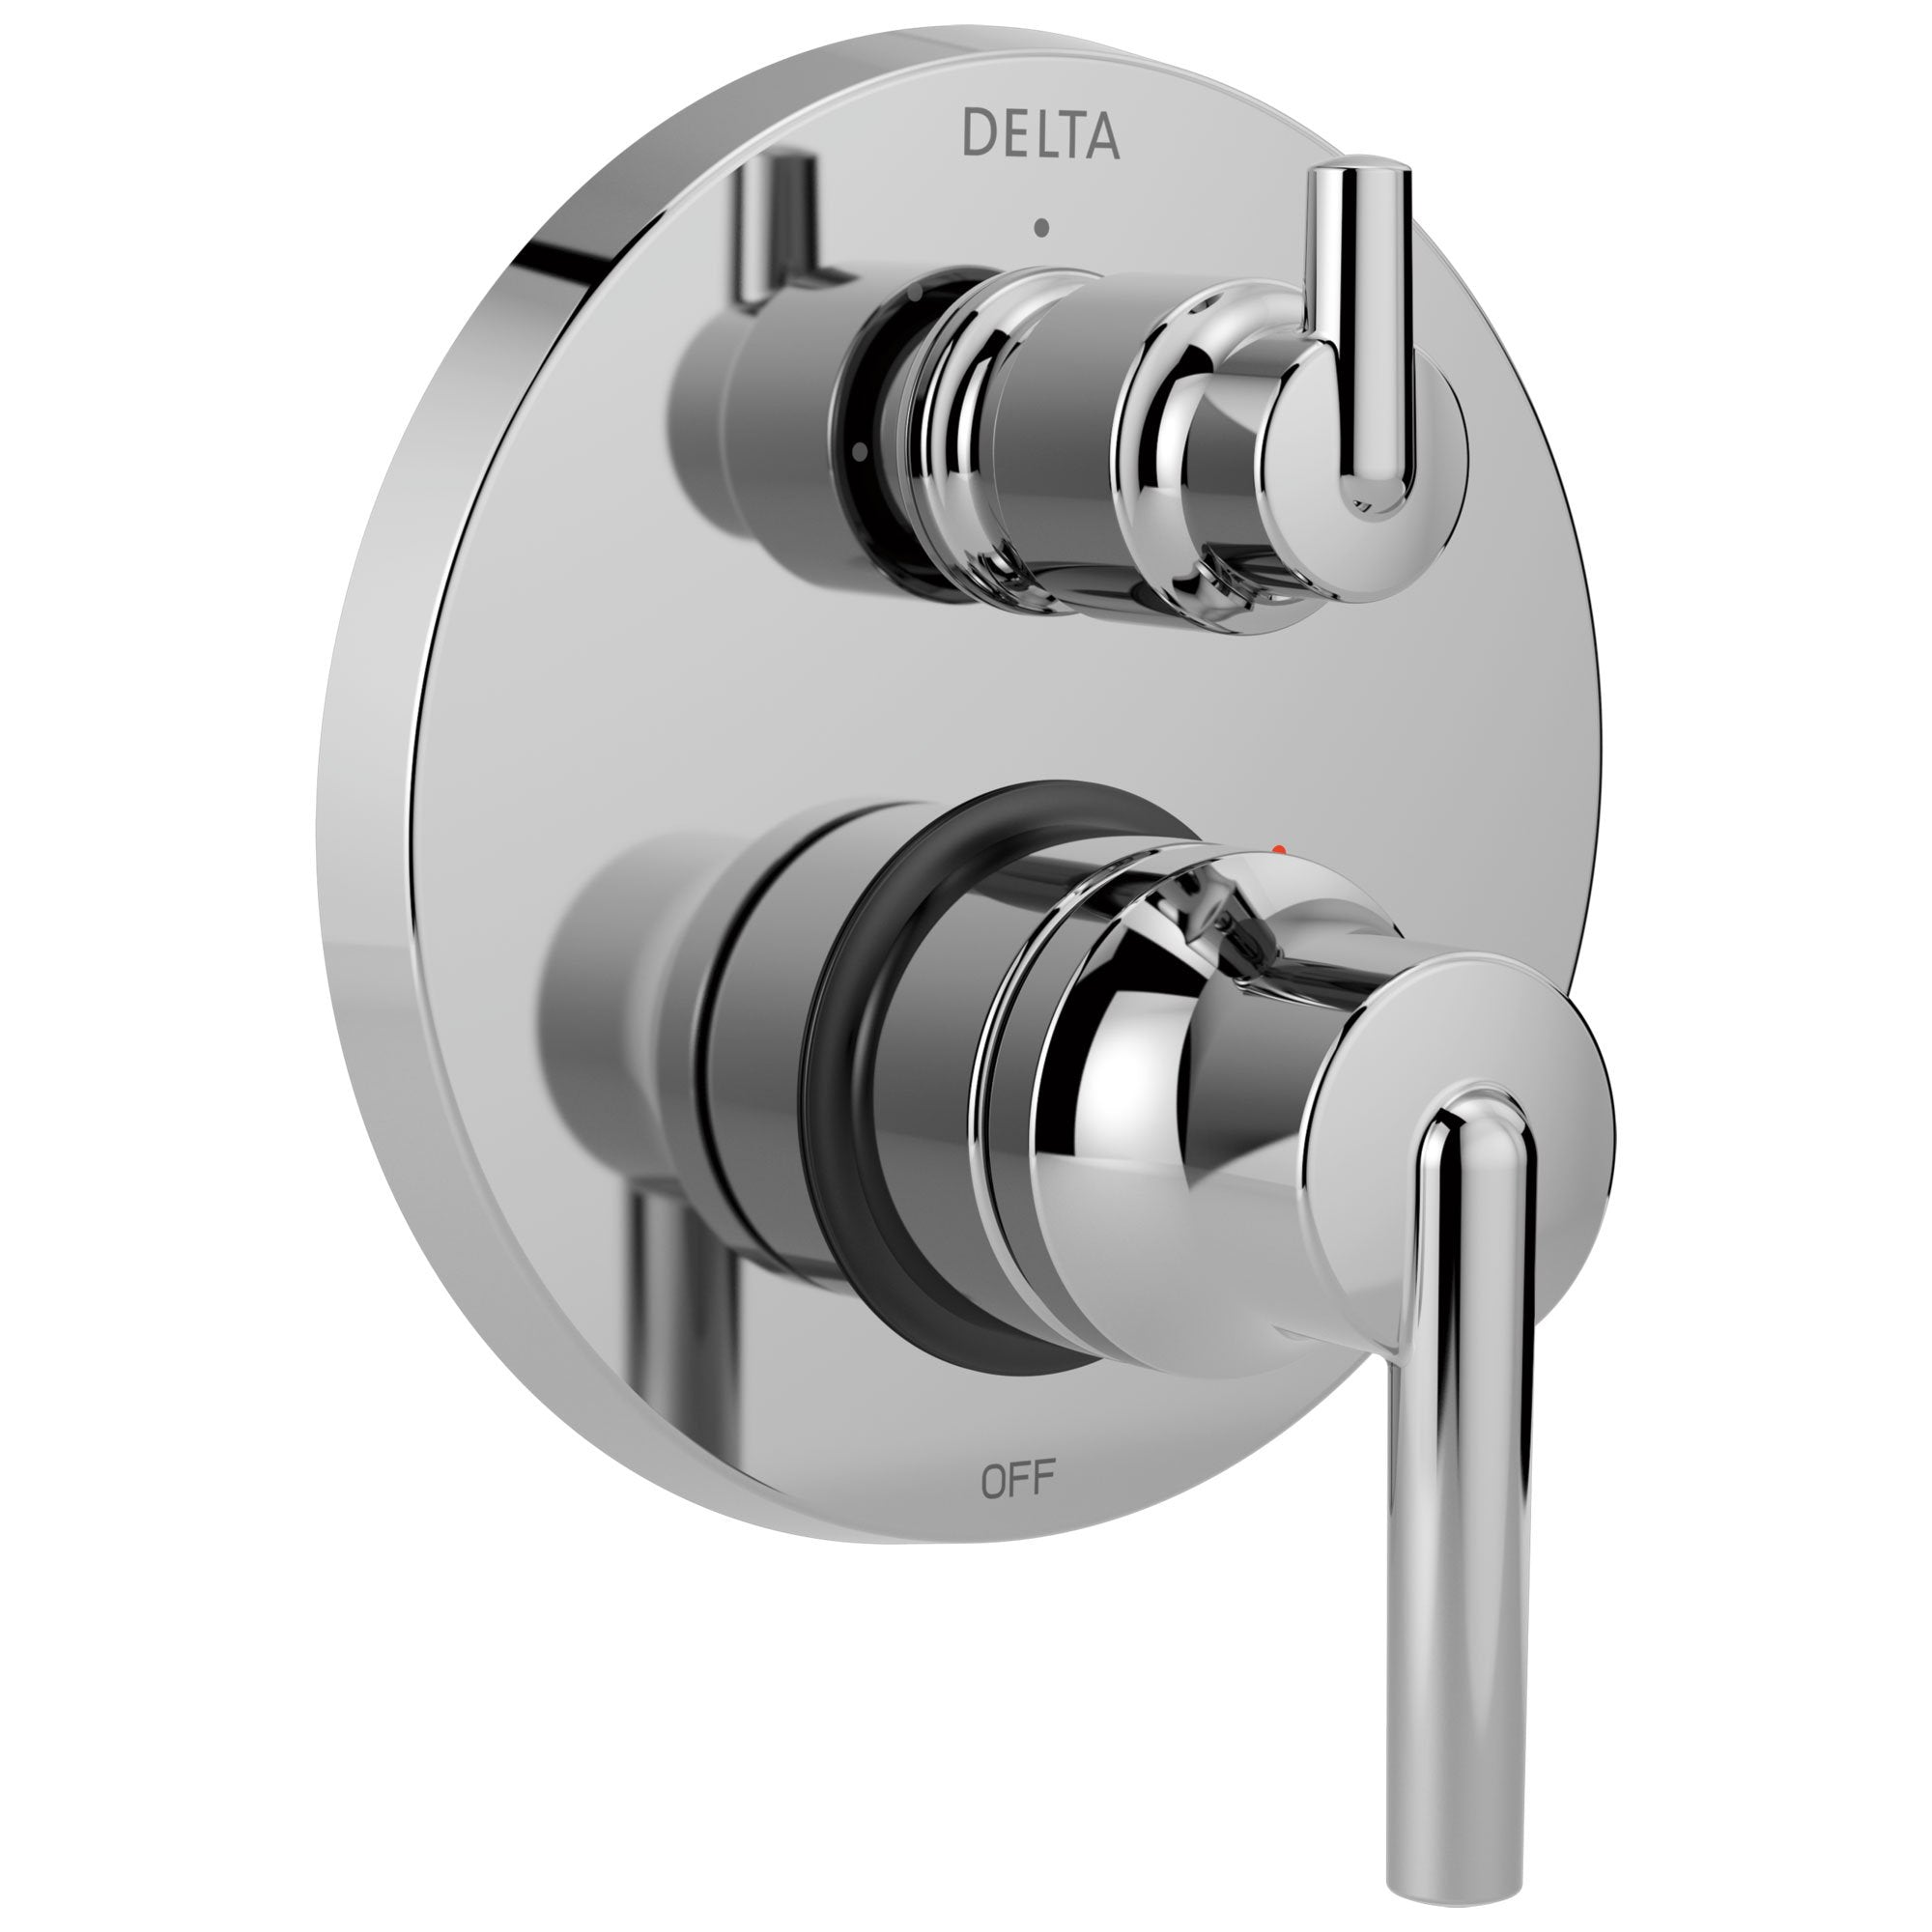 Delta Shower Valve.Delta Trinsic Chrome Monitor 14 Shower Faucet Valve Trim Control Handle With 3 Setting Integrated Diverter Includes Trim Kit And Valve Without Stops